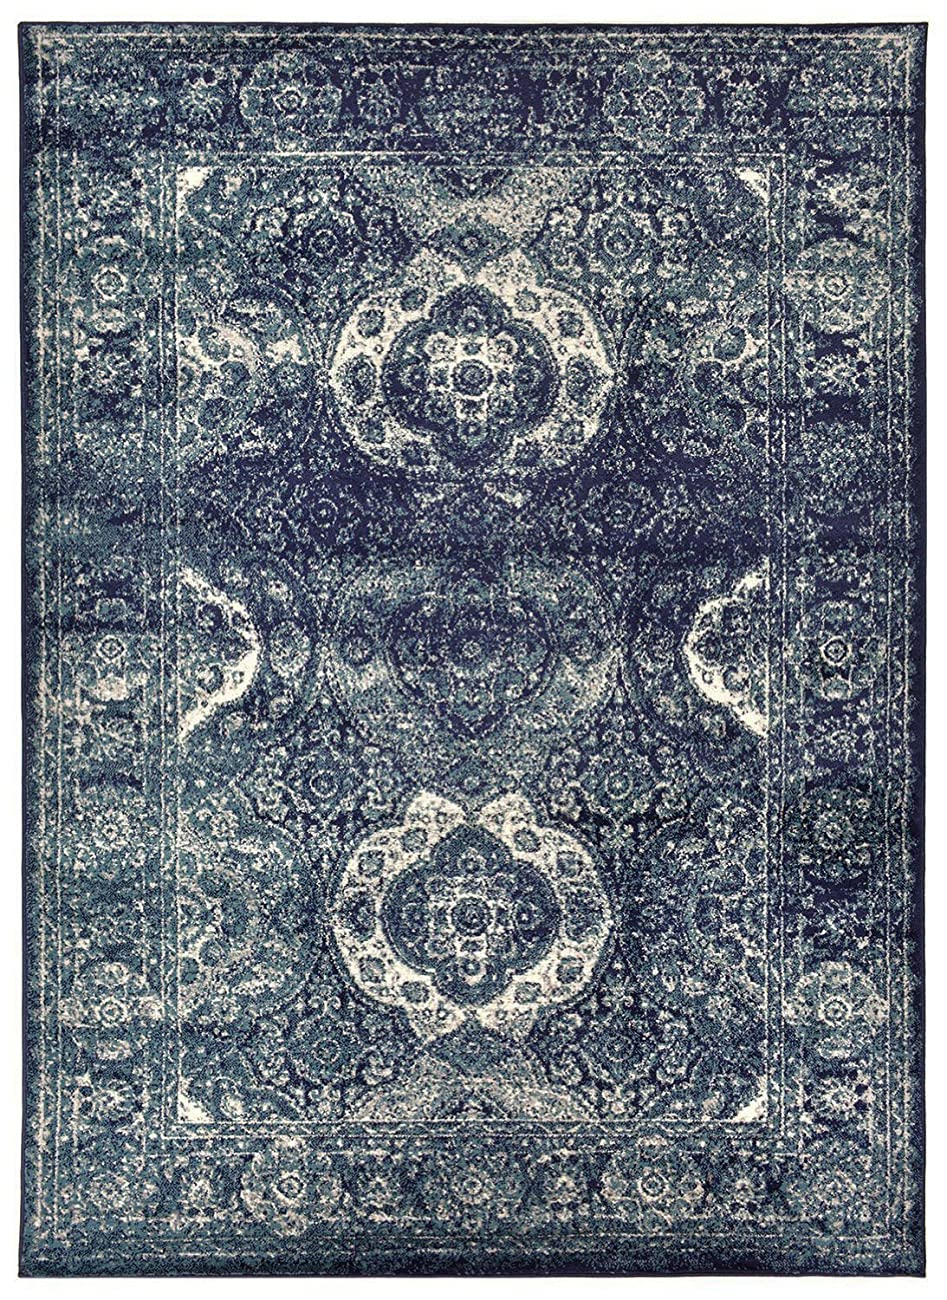 Studio Collection Vintage French Aubusson Design Contemporary Modern Area Rug Rugs 3 Different Color Options (Aubusson Navy Blue, 5 x 7) 1